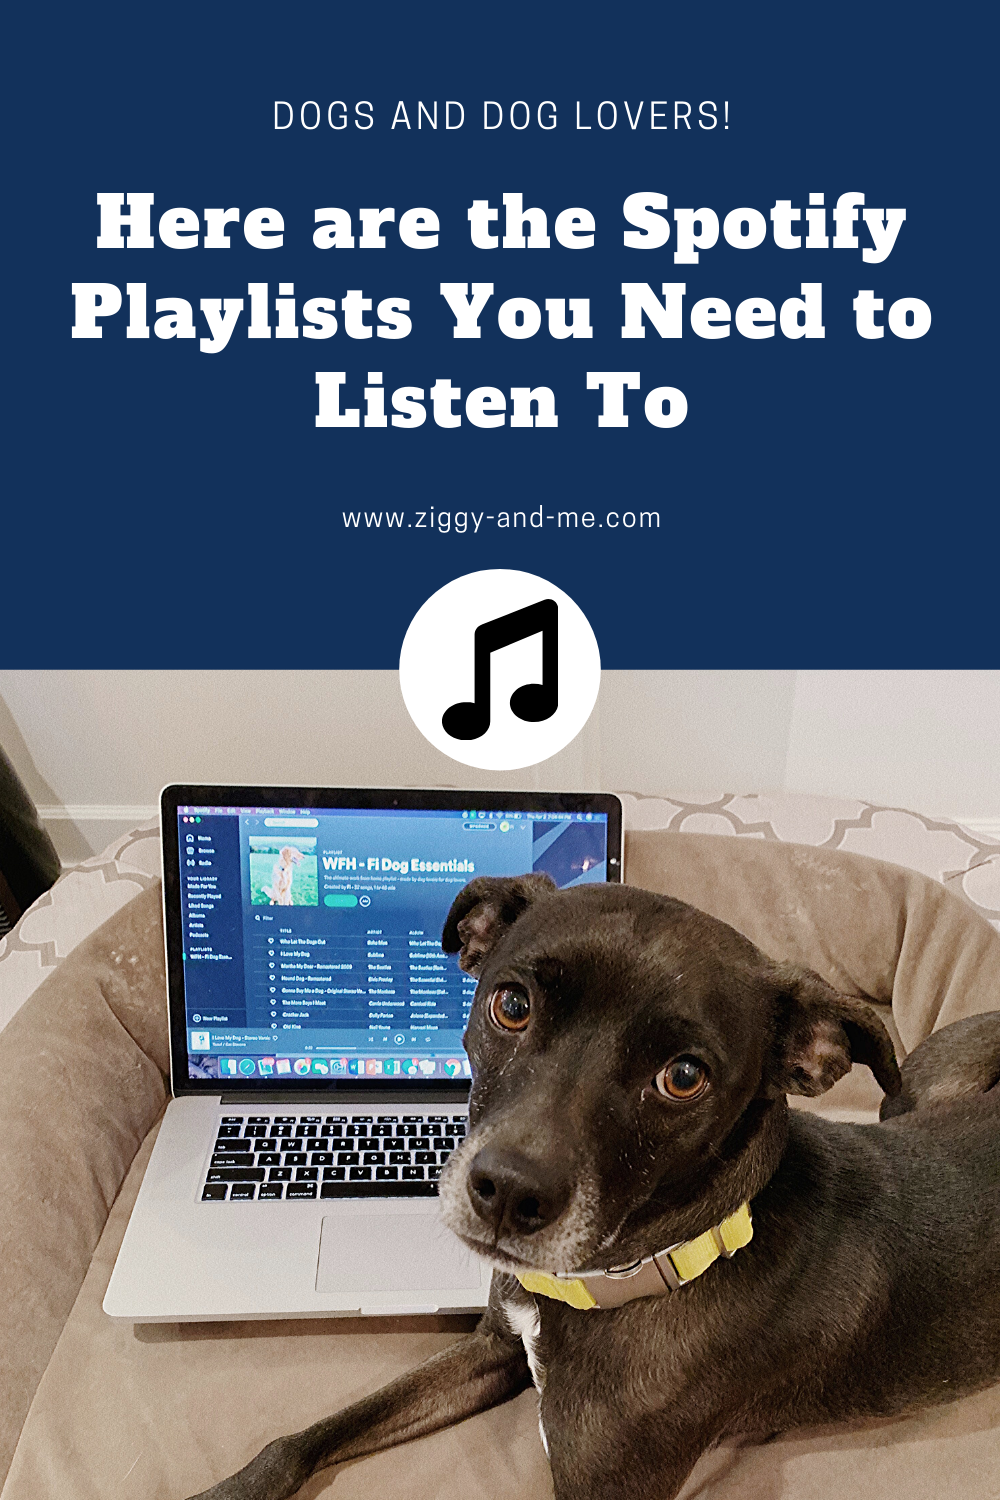 Best Spotify Playlists 2021 Here are the Best Dog Spotify Playlists You Need to Listen to NOW